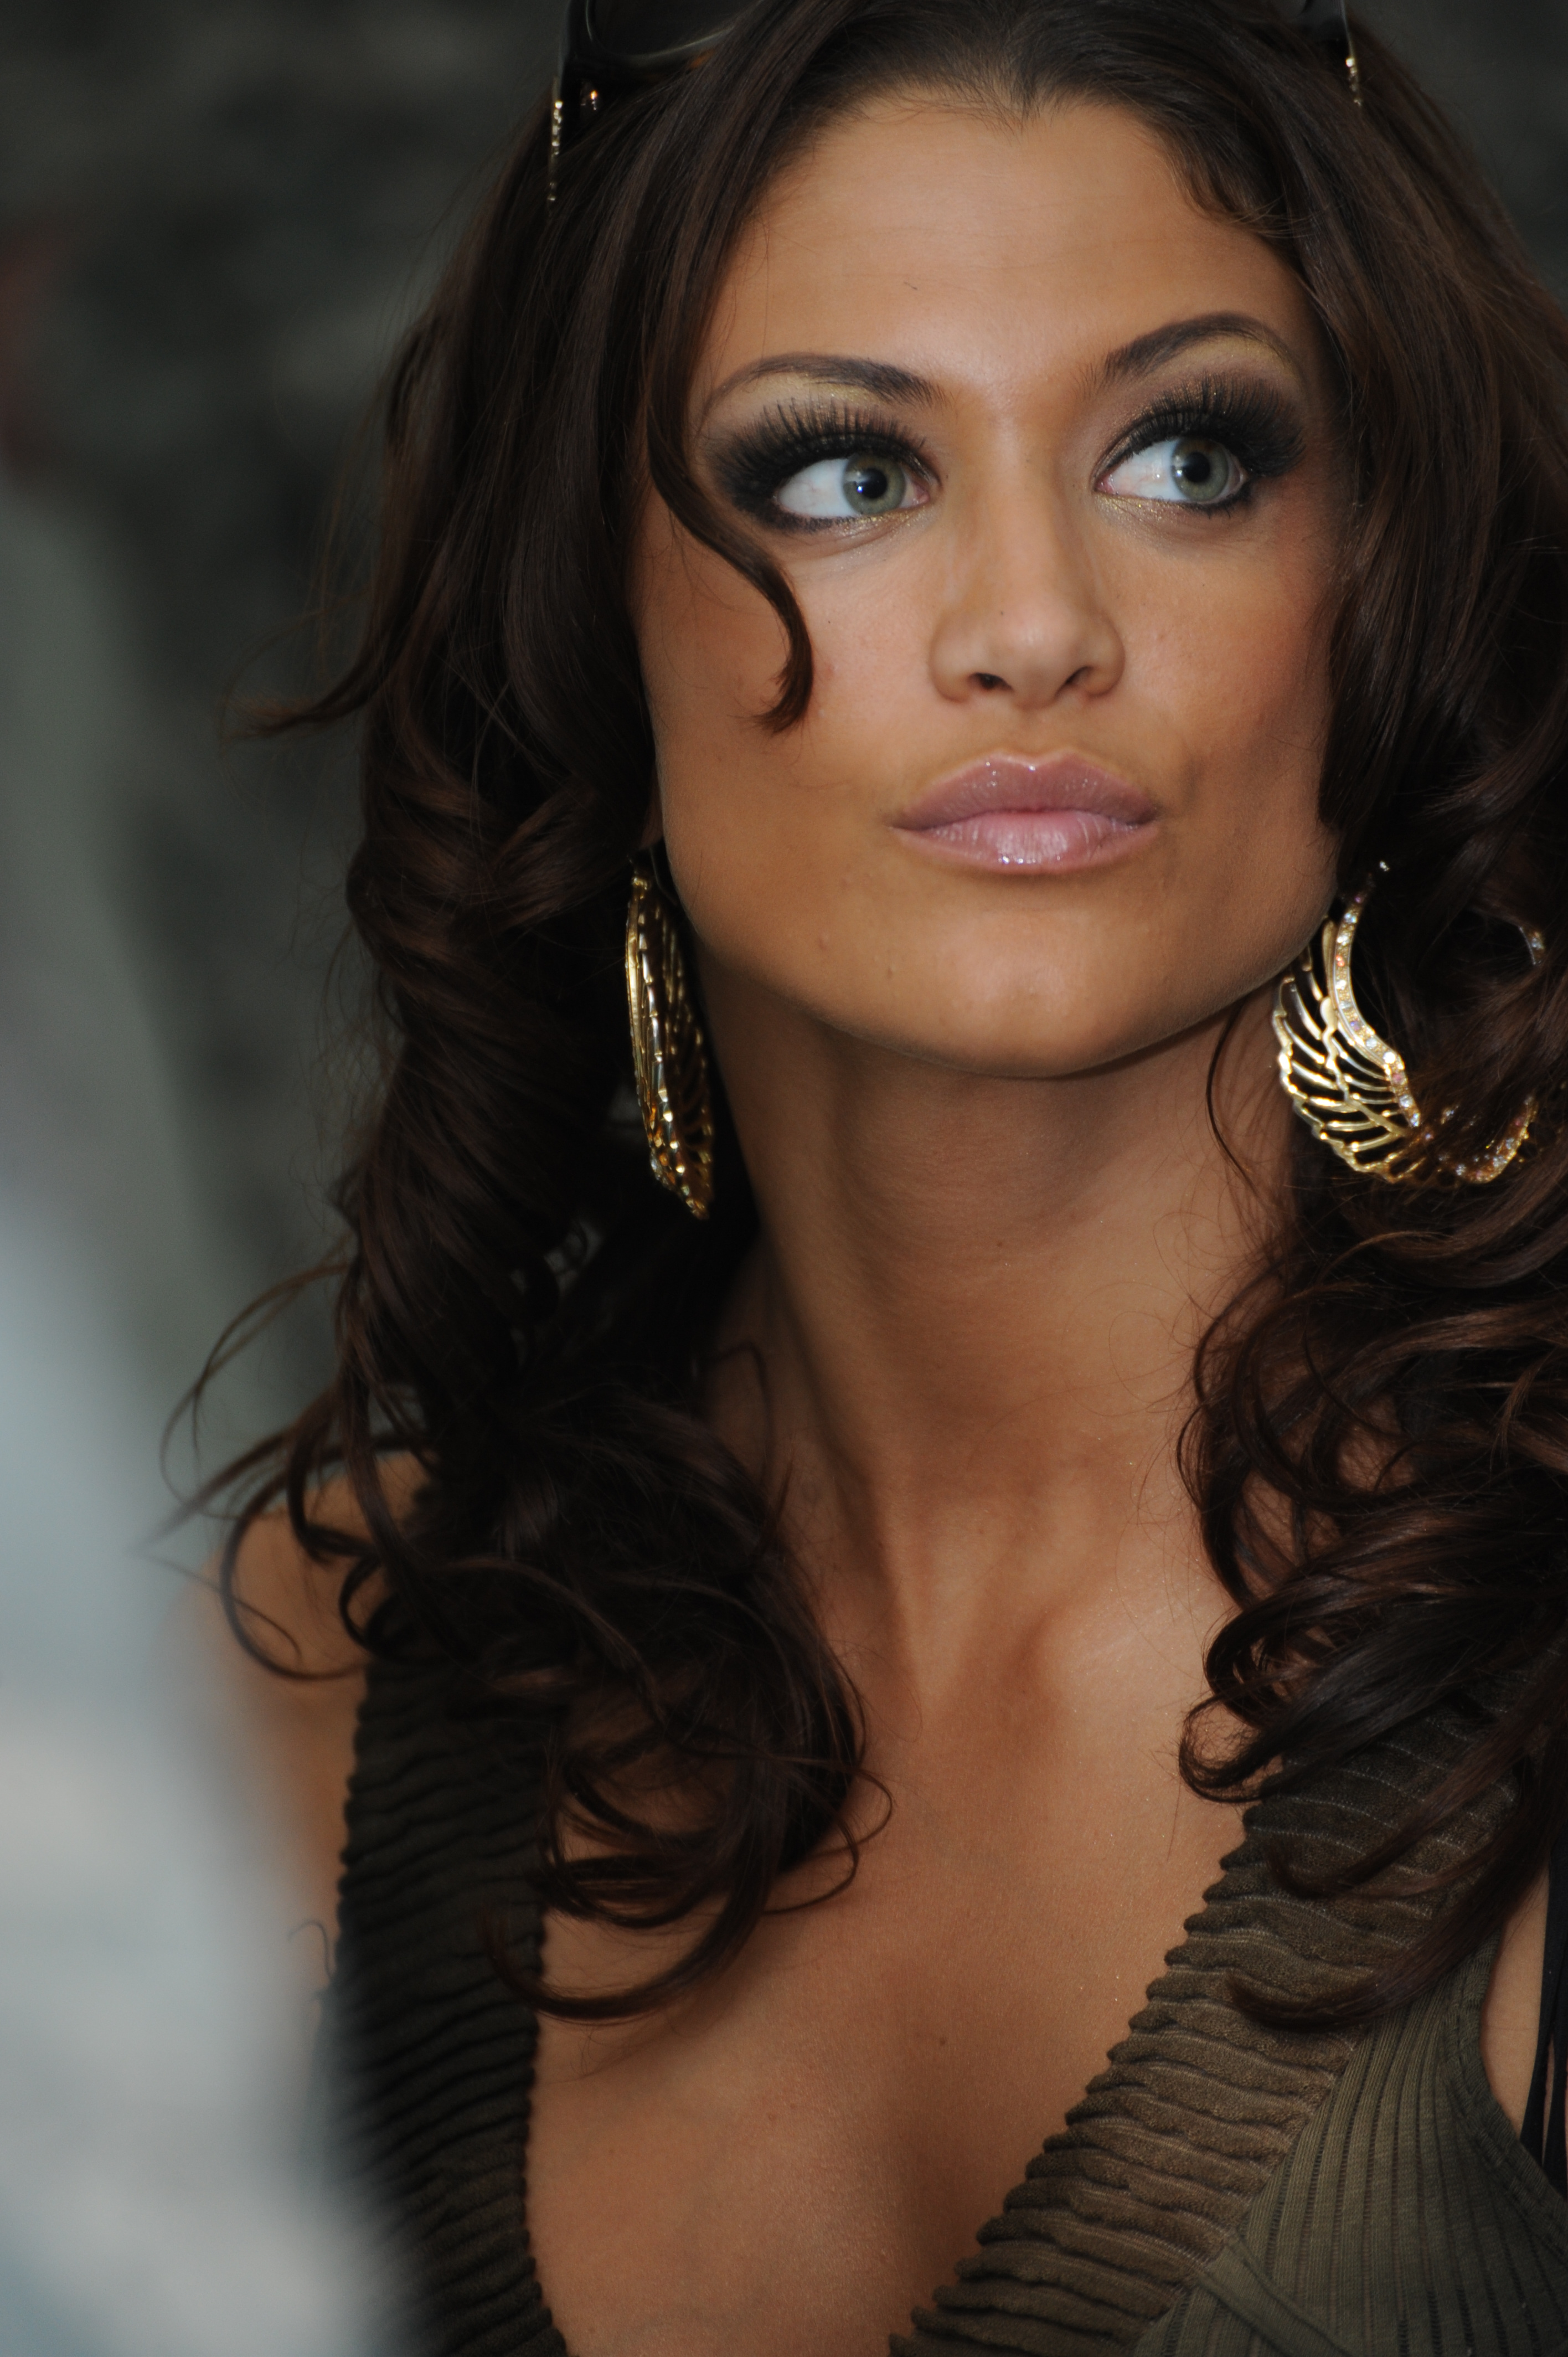 http://upload.wikimedia.org/wikipedia/commons/3/3f/Eve_Torres_081204-A-4676S-073.jpg